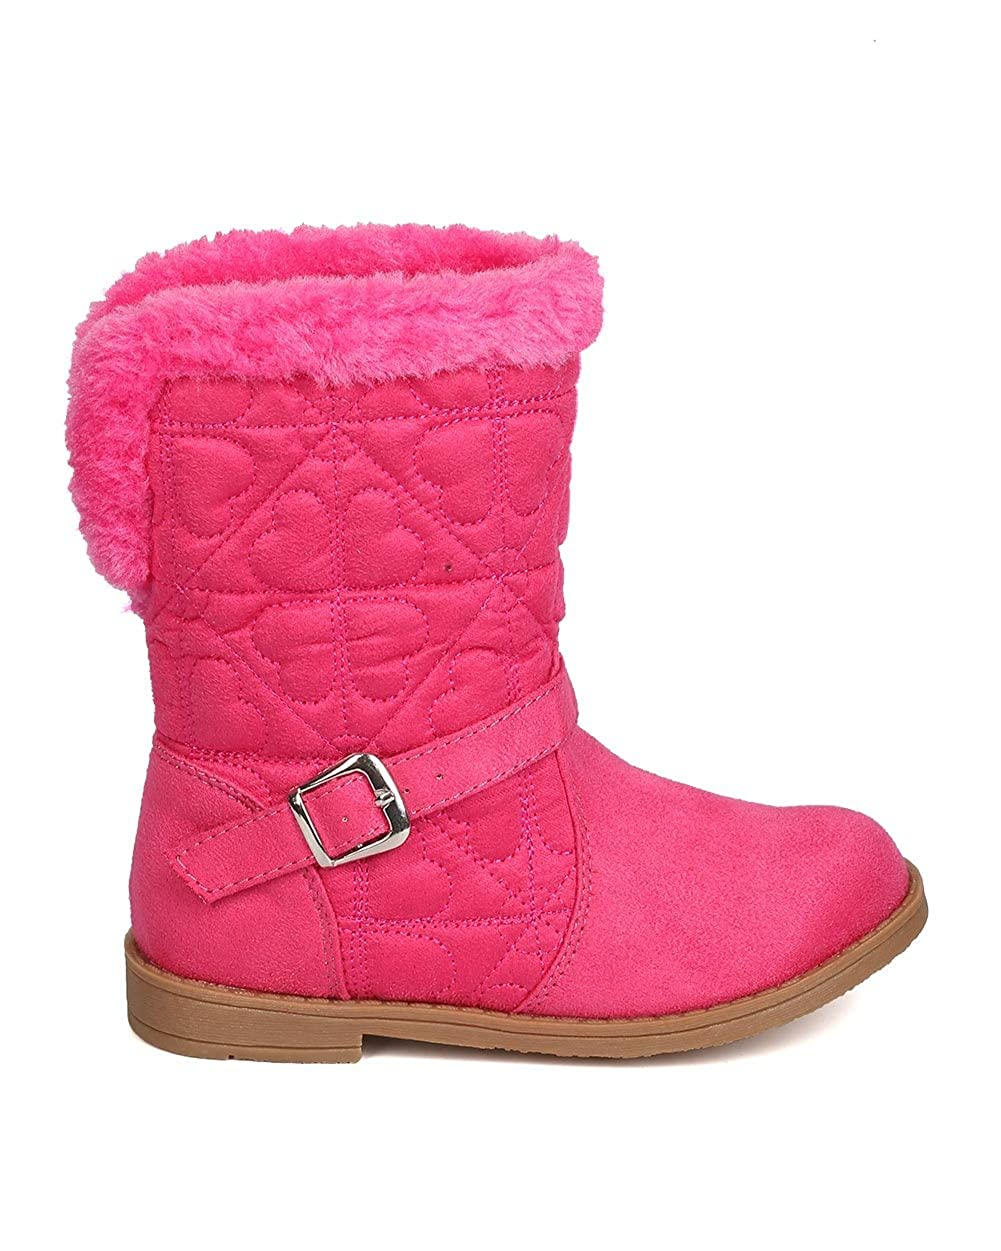 Pink Little Angel Girls Quilted Hearts Suede Fur Riding Winter Boot FG02